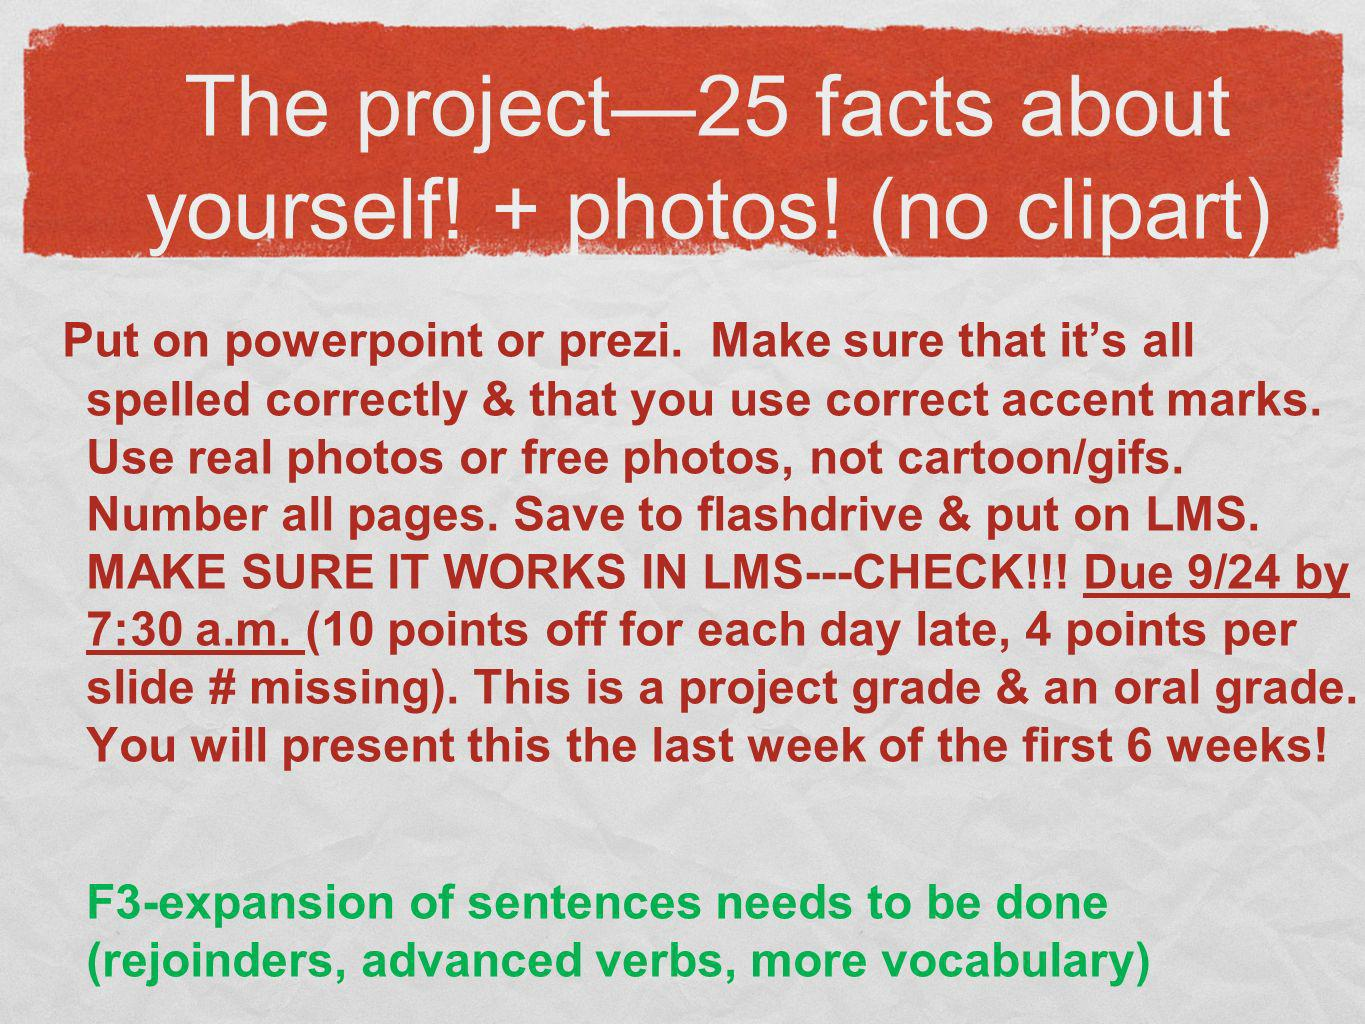 The project—25 facts about yourself! + photos! (no clipart)